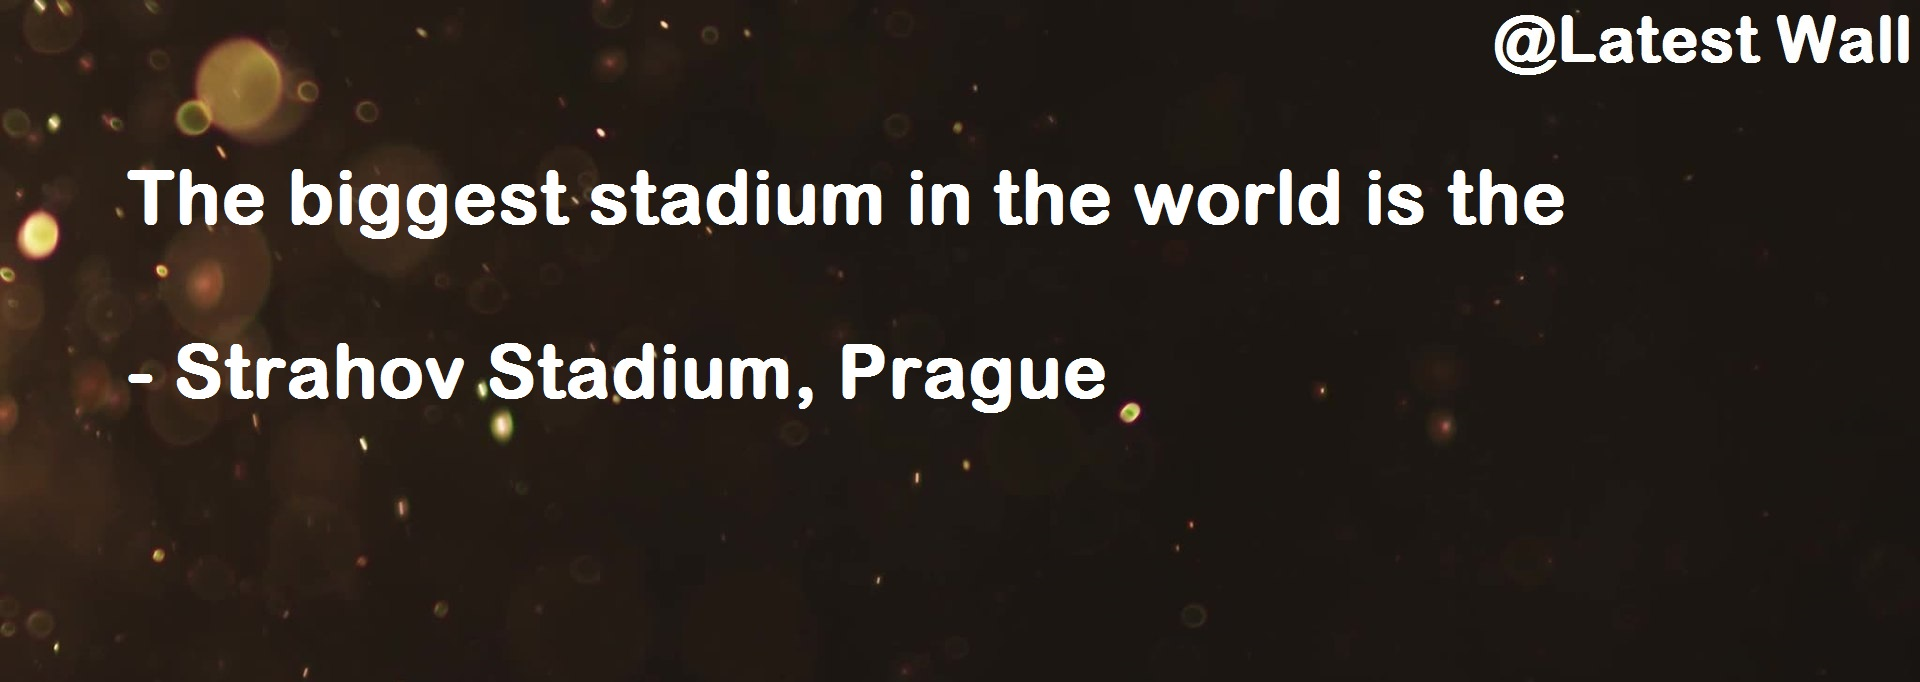 The biggest stadium in the world is the